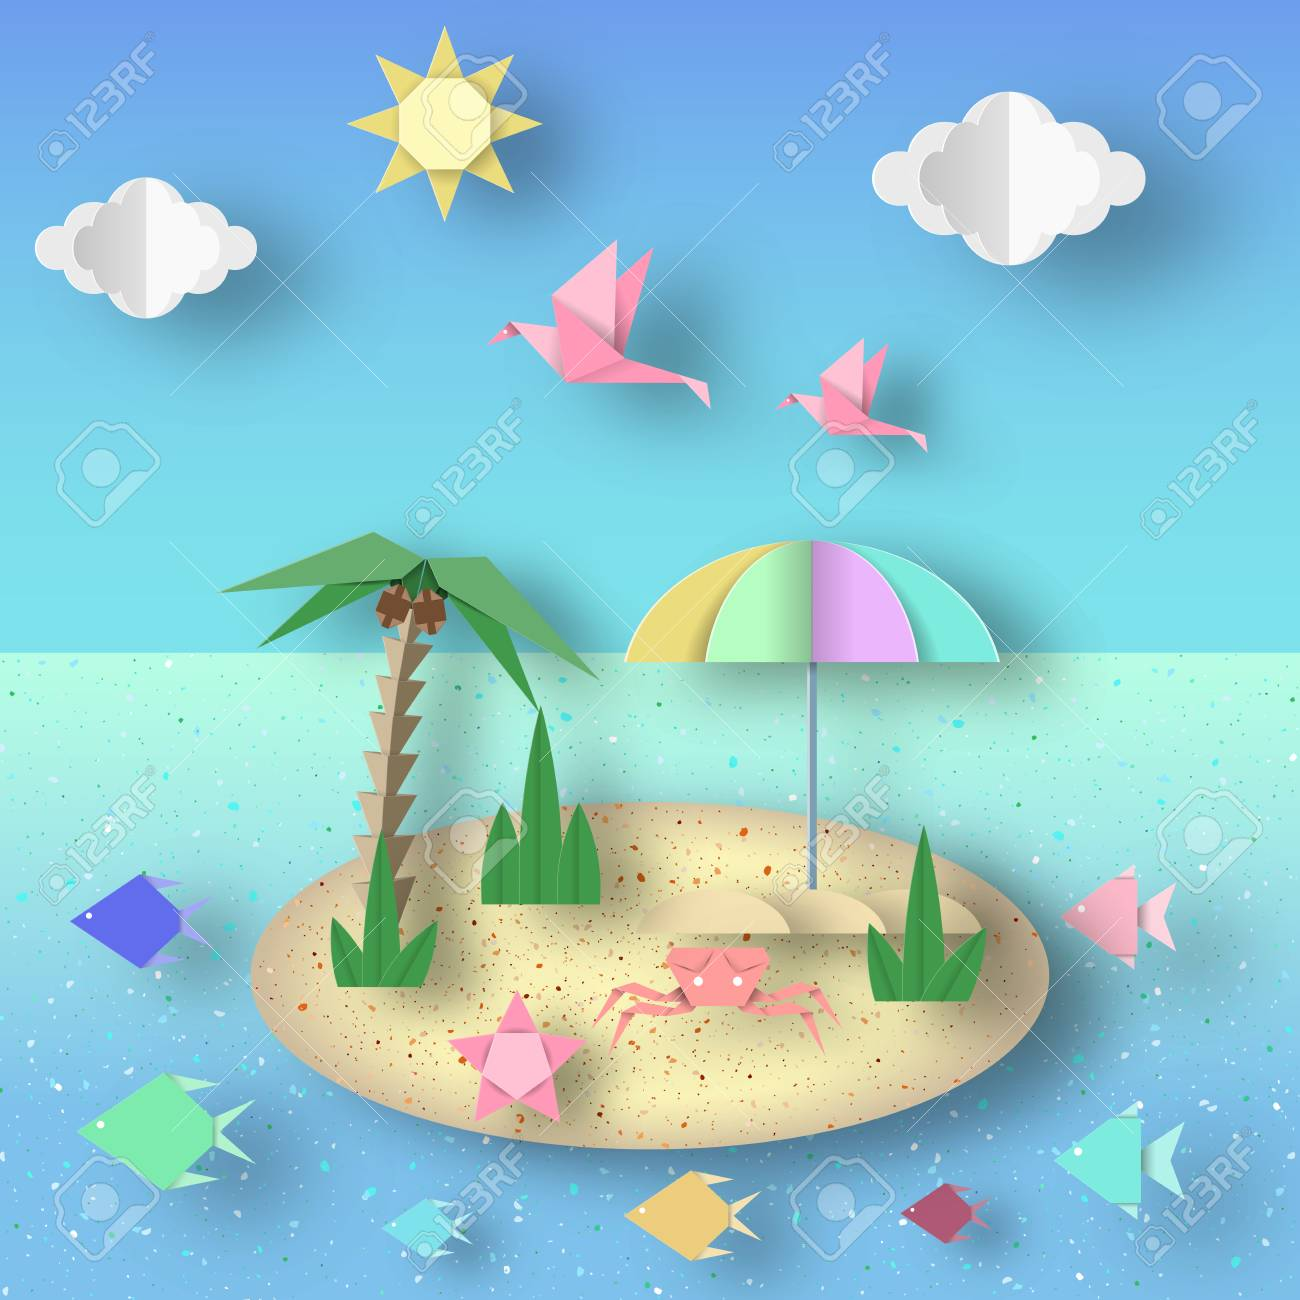 Summer origami fun art applique paper crafted cutout world summer origami fun art applique paper crafted cutout world composition with style elements and jeuxipadfo Image collections